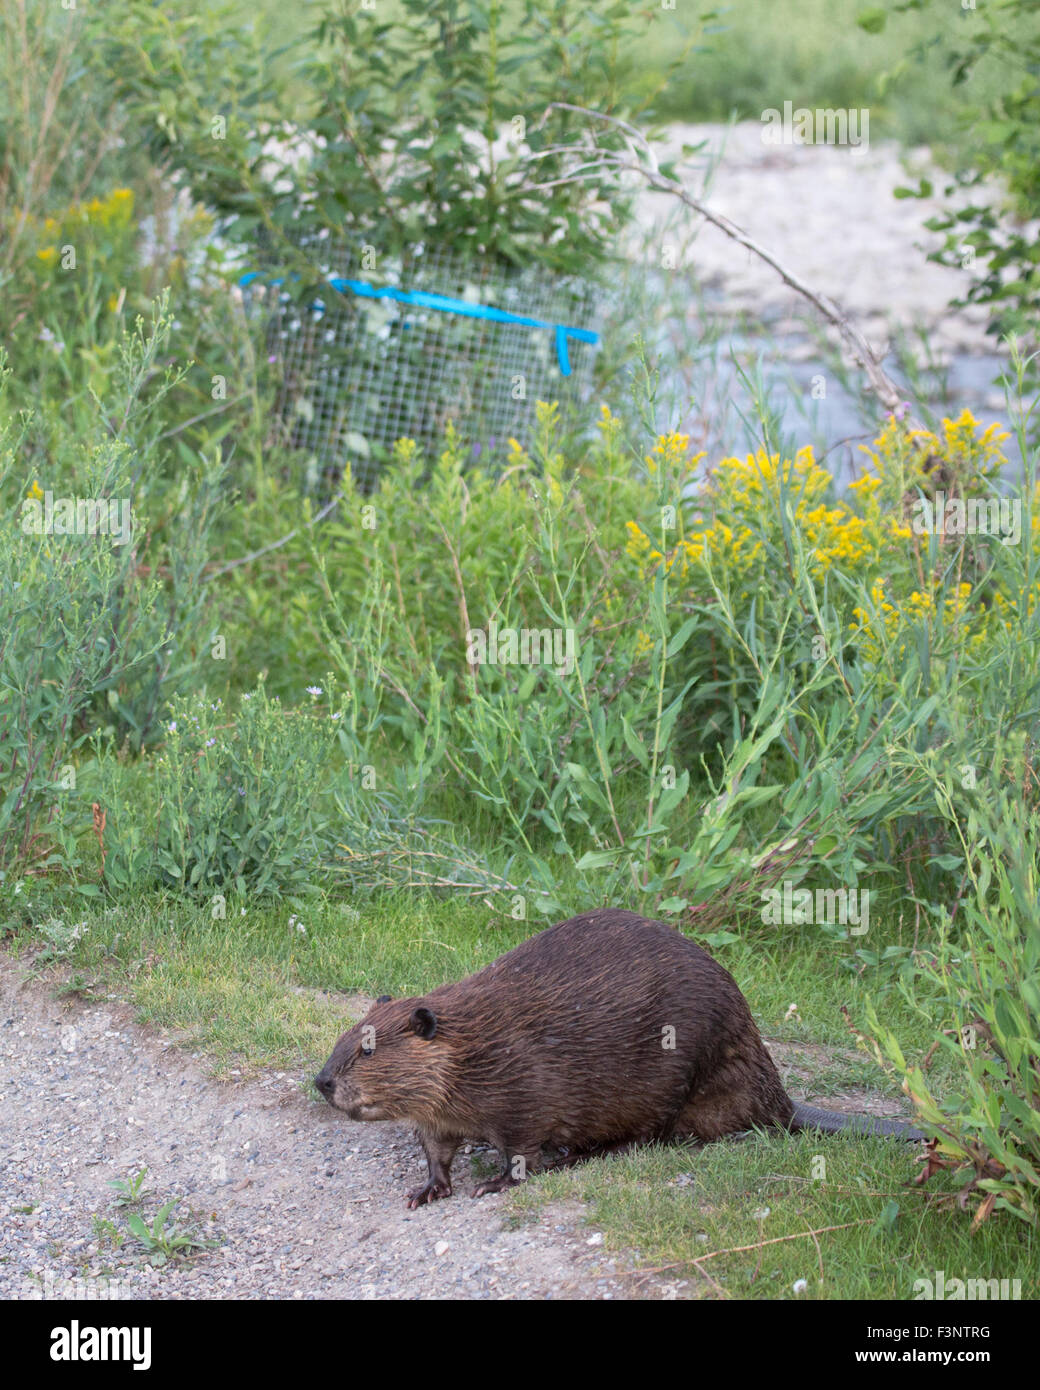 Beaver (Castor canadensis) in city park walking away from shrub wrapped in wire for protection - Stock Image